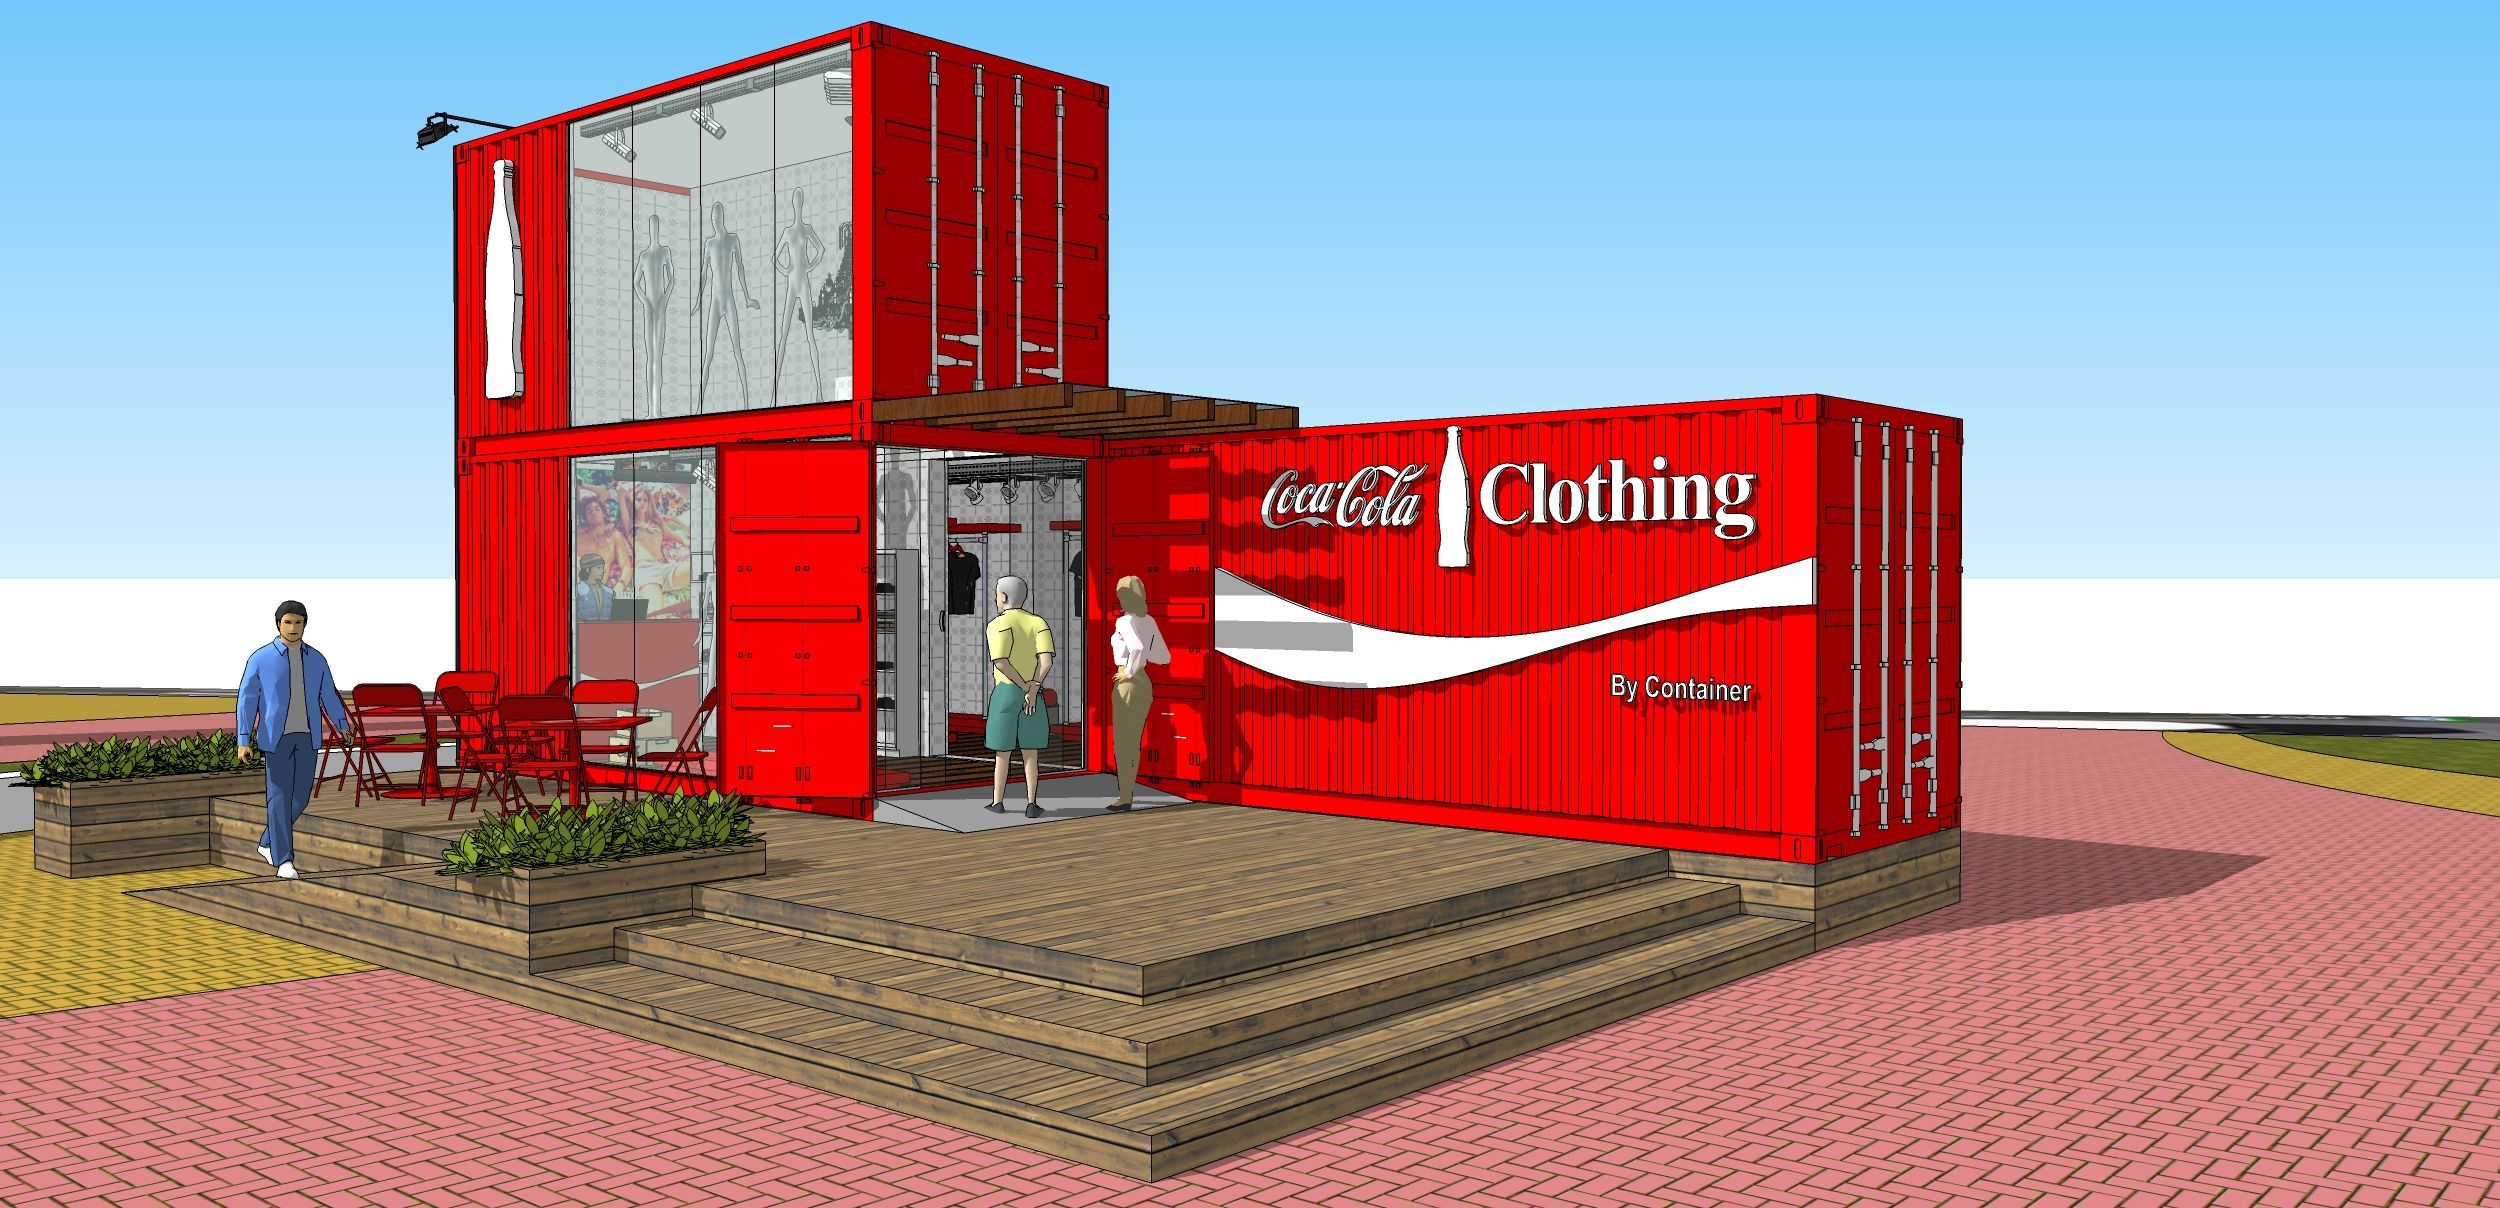 Shipping Container Projects coca-cola clothing vonpar | others: sketches and projects in